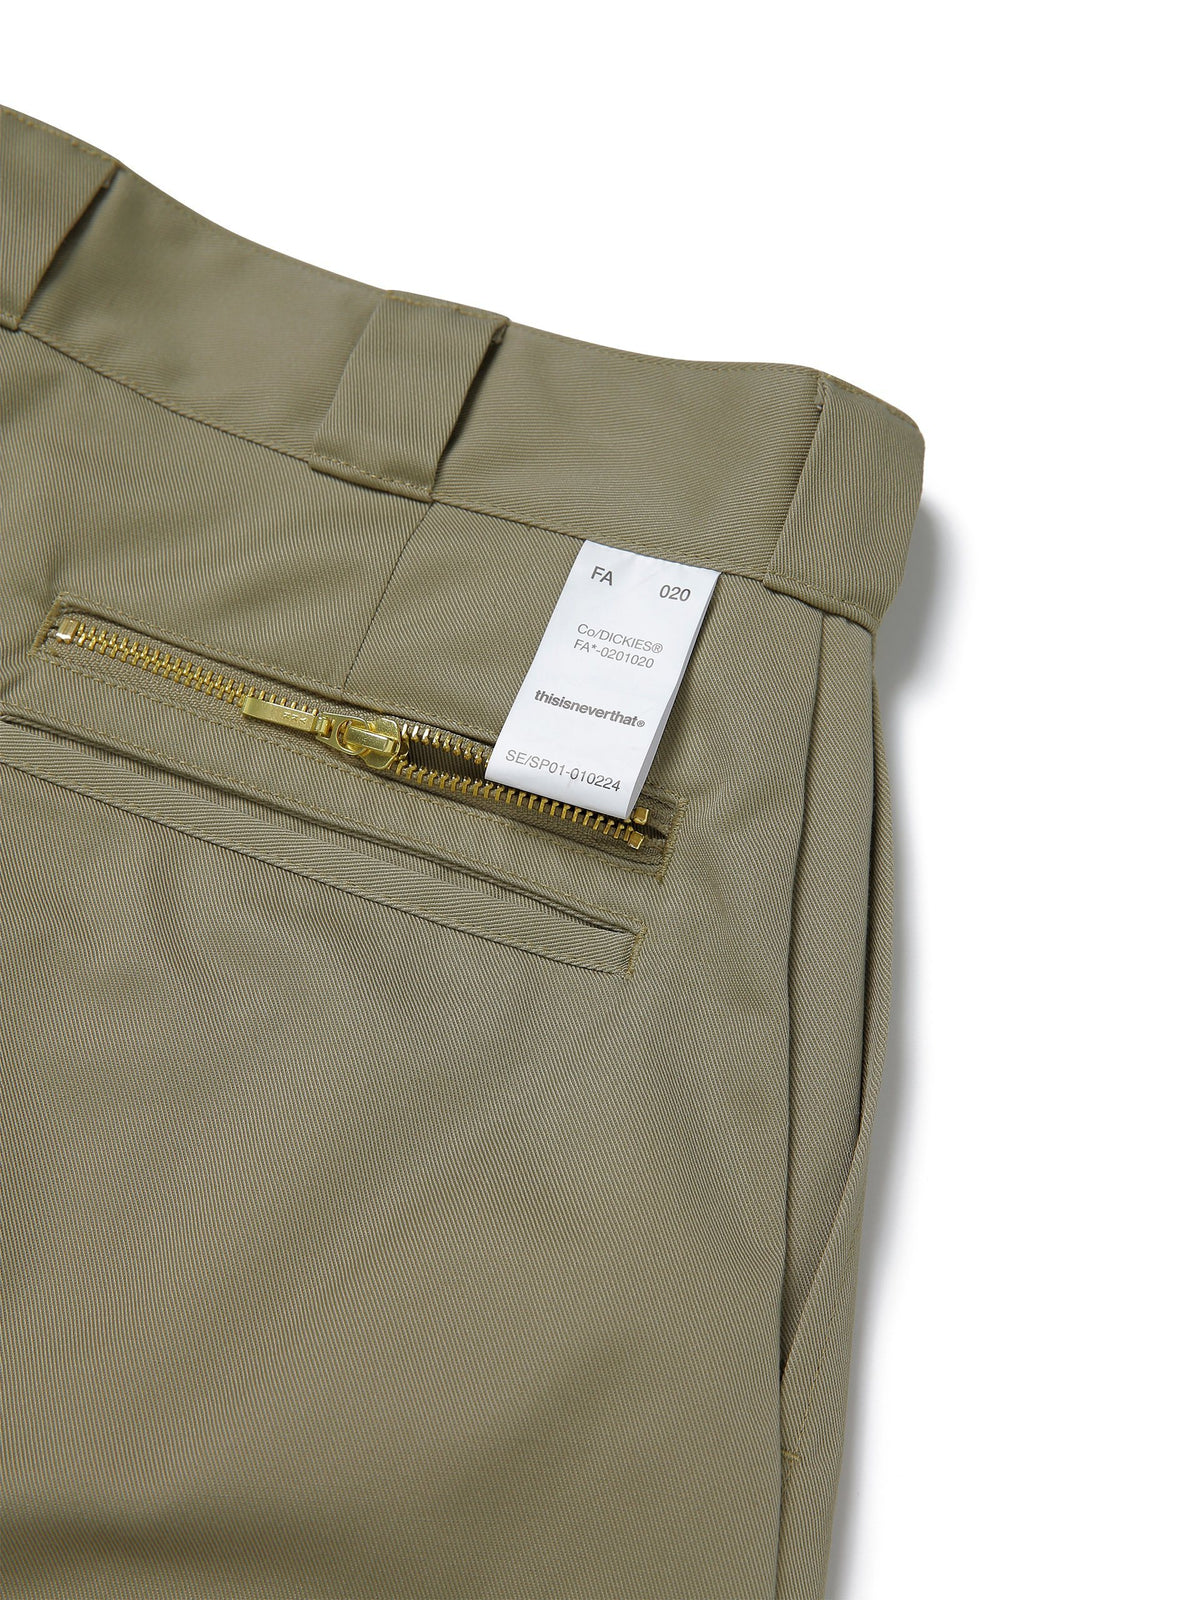 TNT Dickies Work Pant